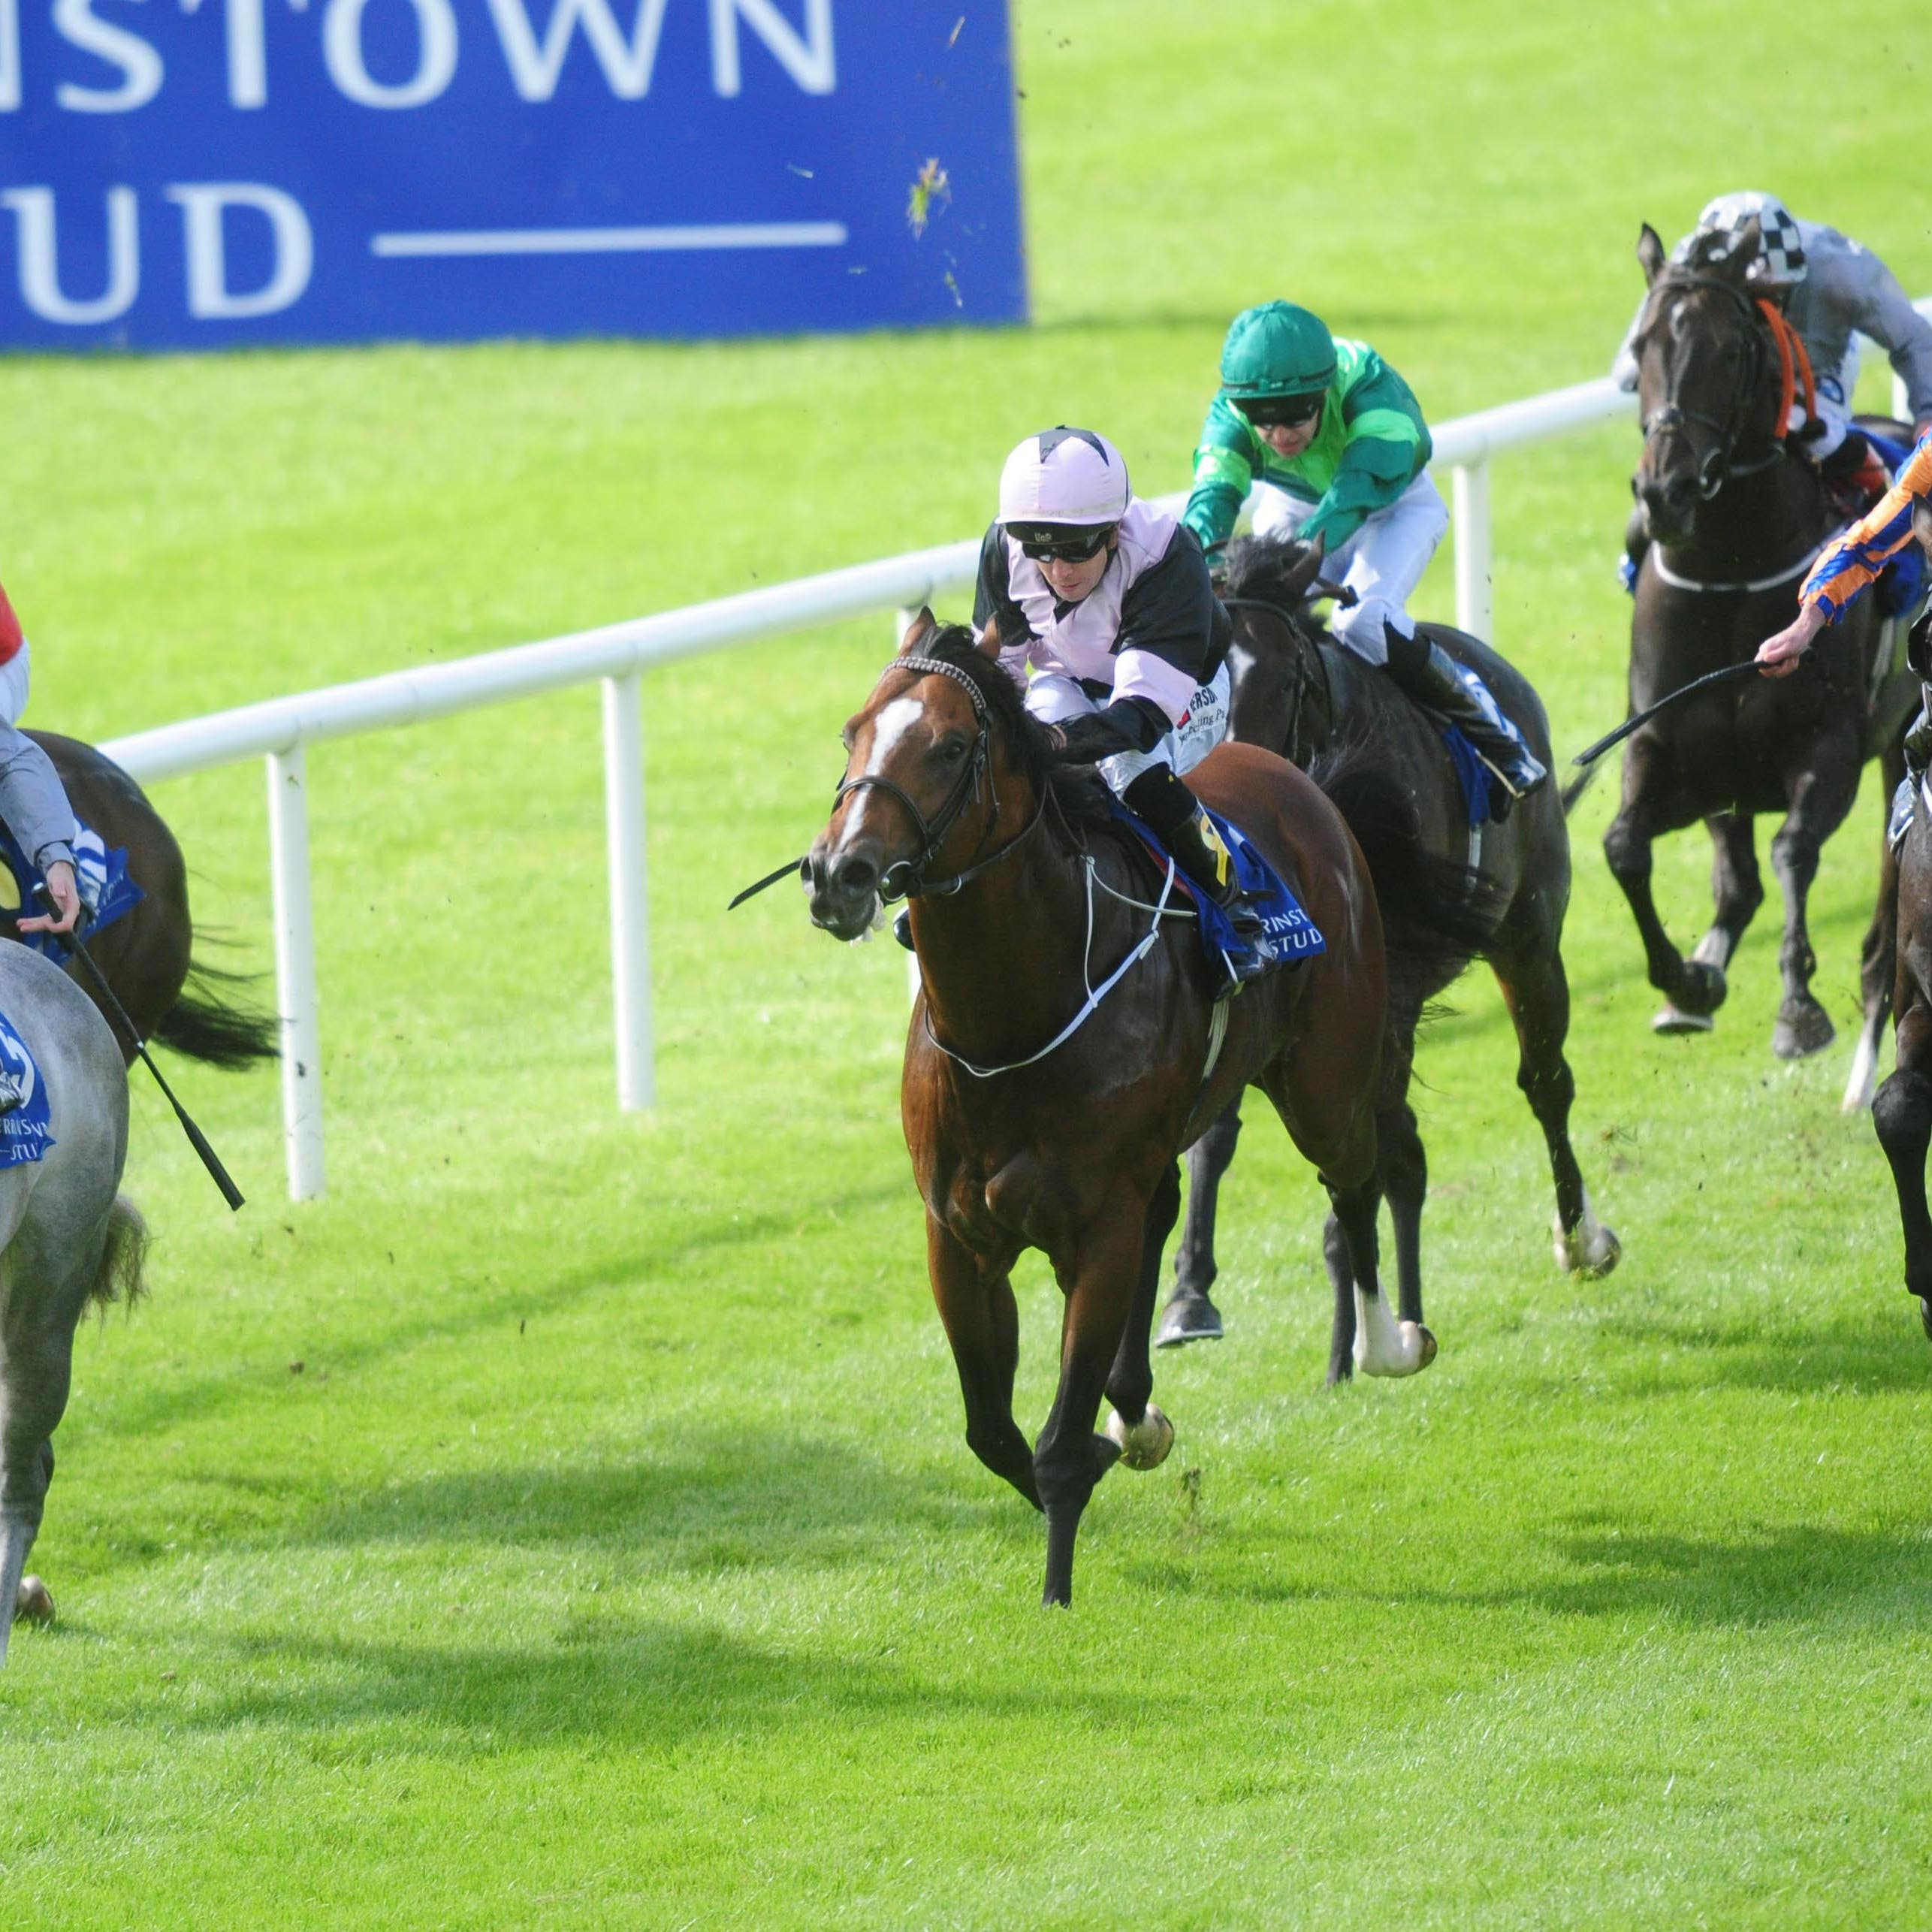 Hit The Bid found the ground too soft at the Curragh